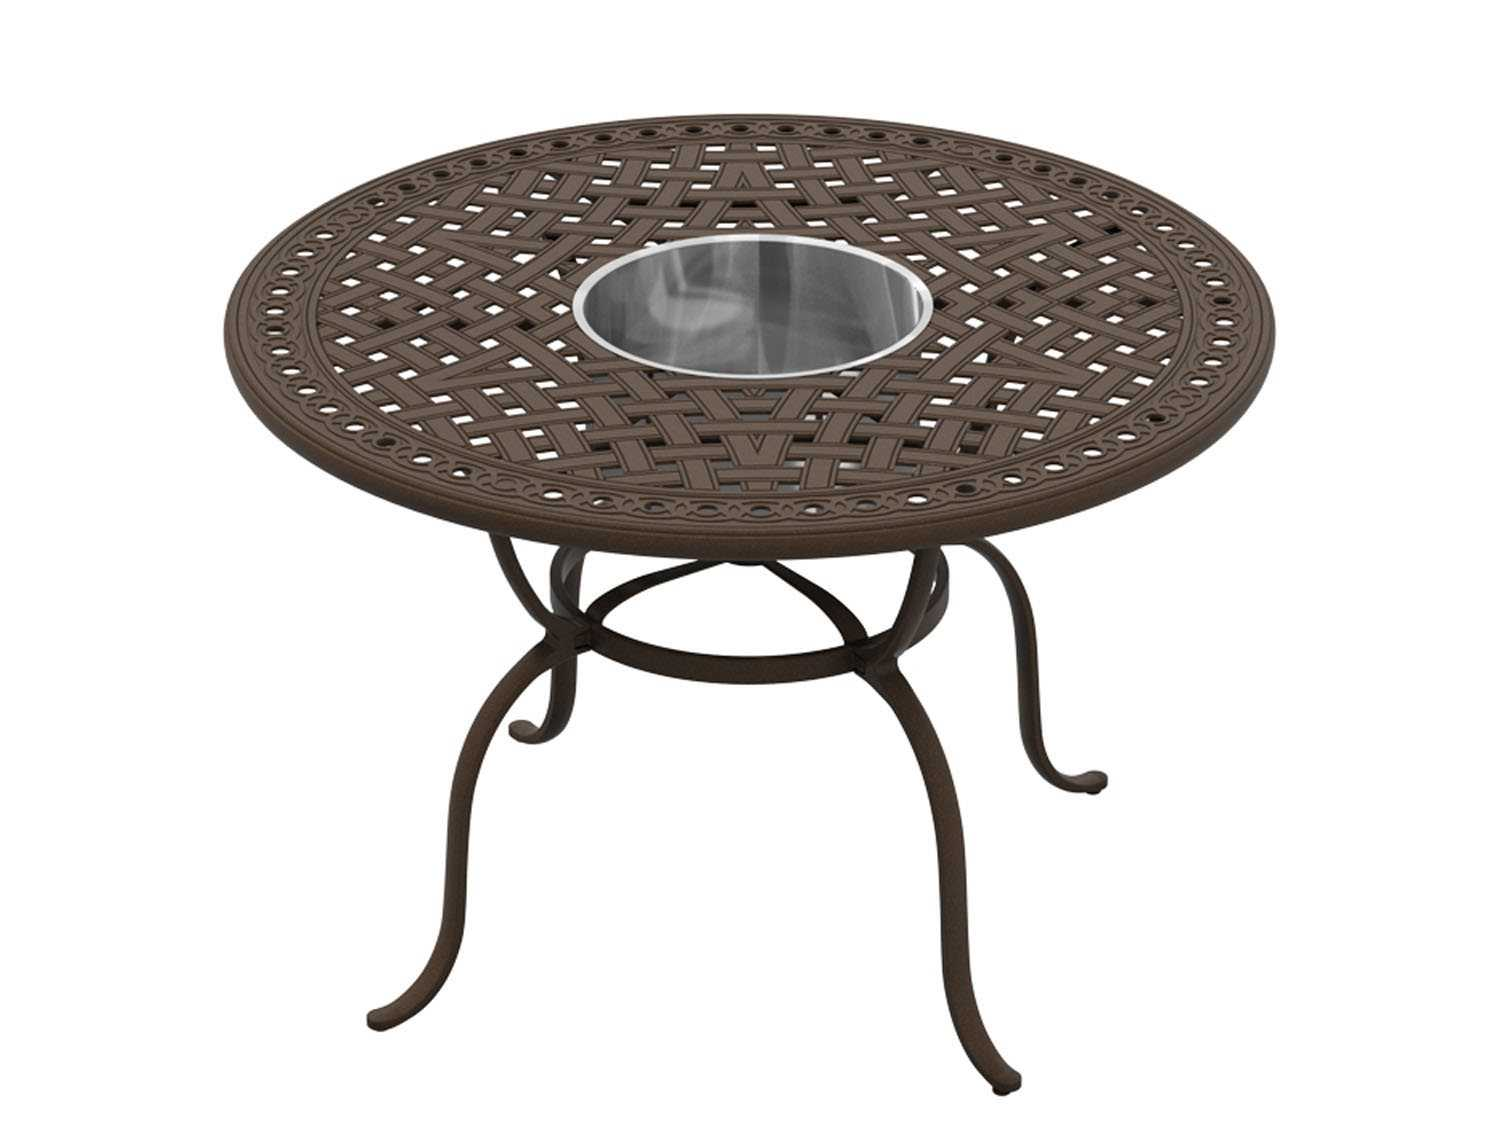 garden terrace counter height beverage bucket fire pit table fire pits ...